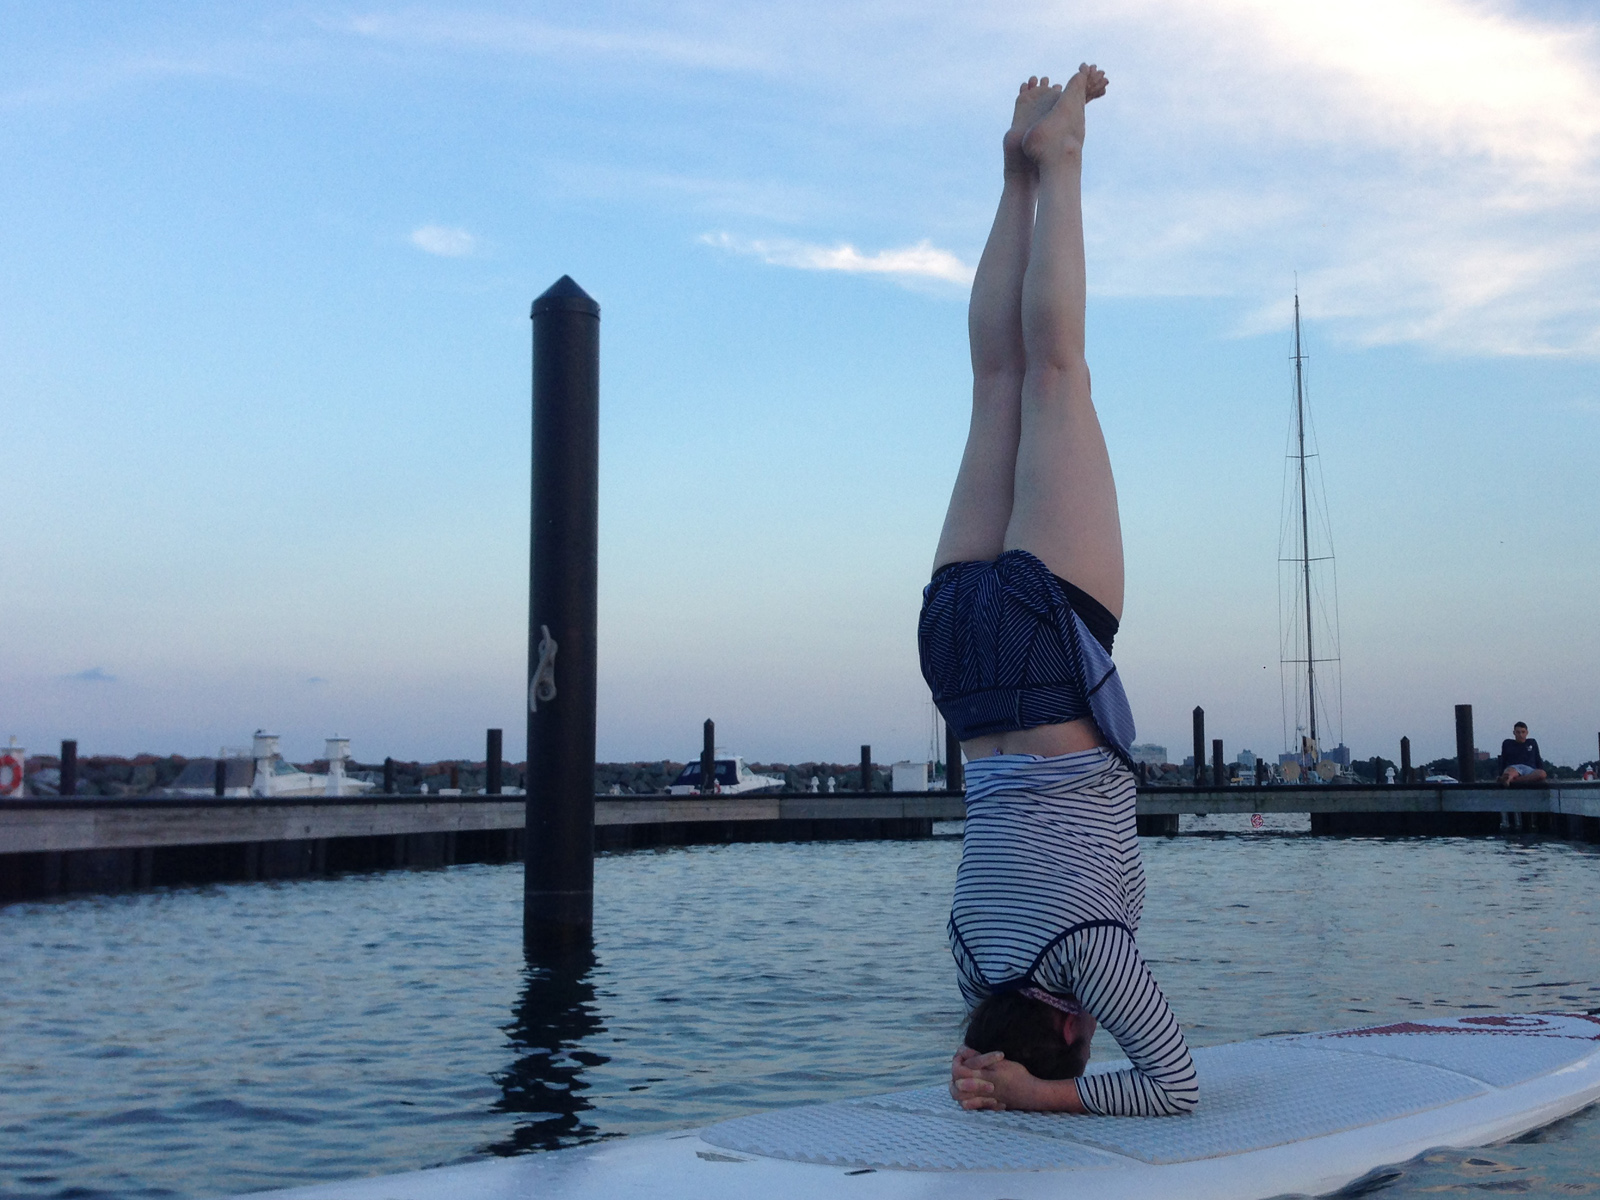 SUP Yoga 630pm Weekday Class at 31st St Harbor